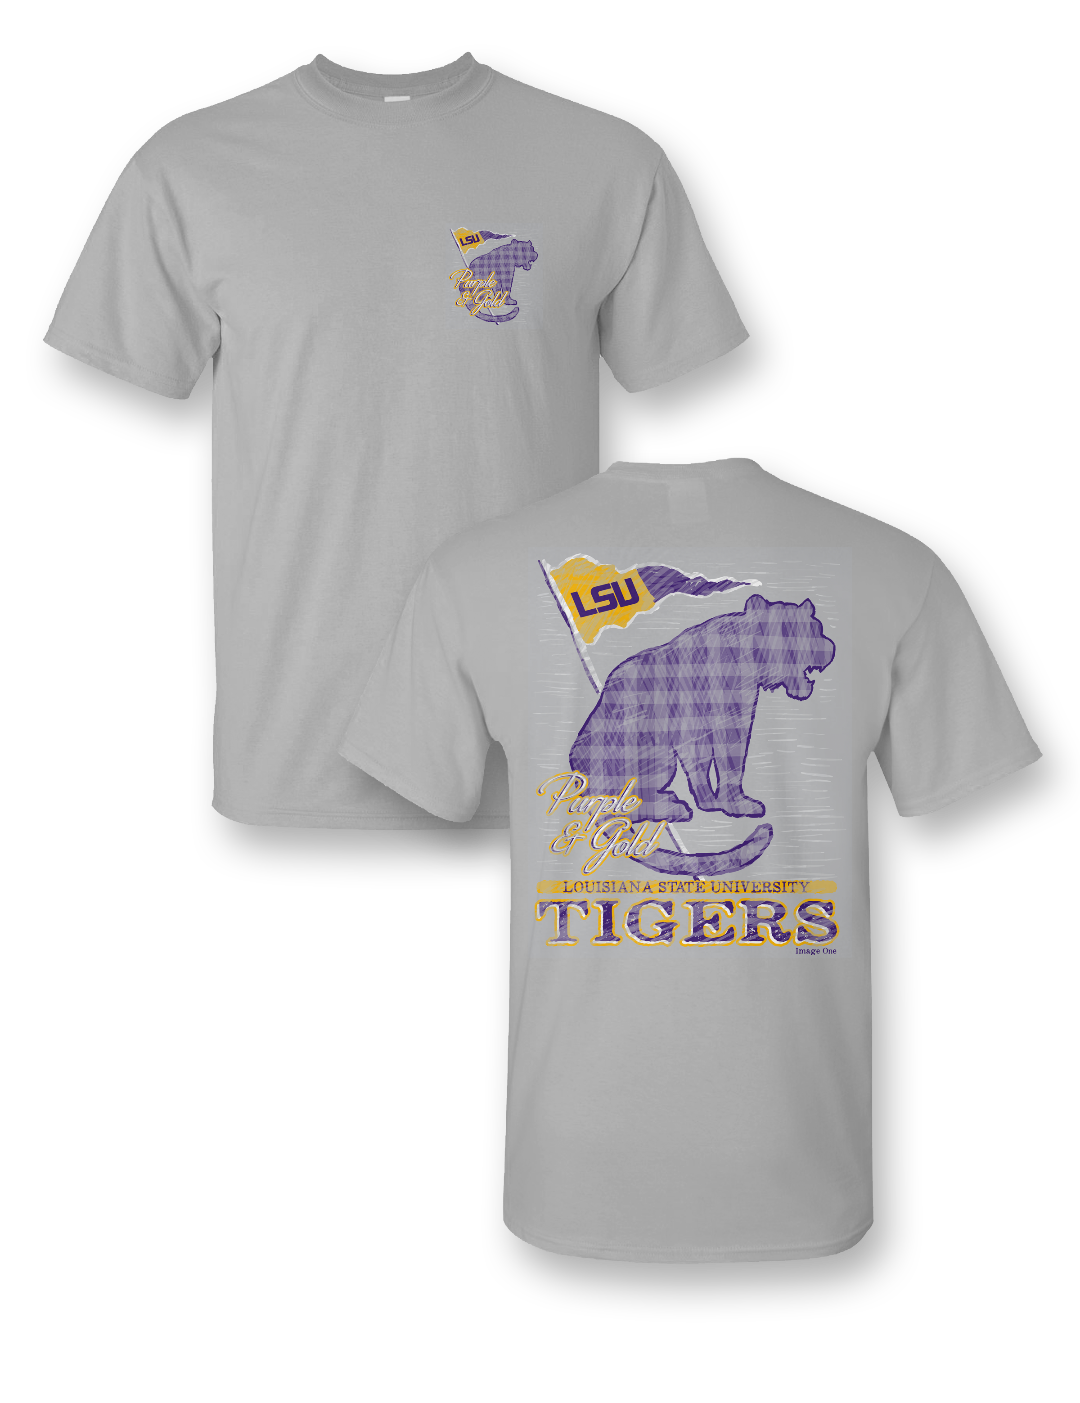 Sale Sassy Frass University of Louisiana LSU Tradition & Pride Girlie Bright T Shirt